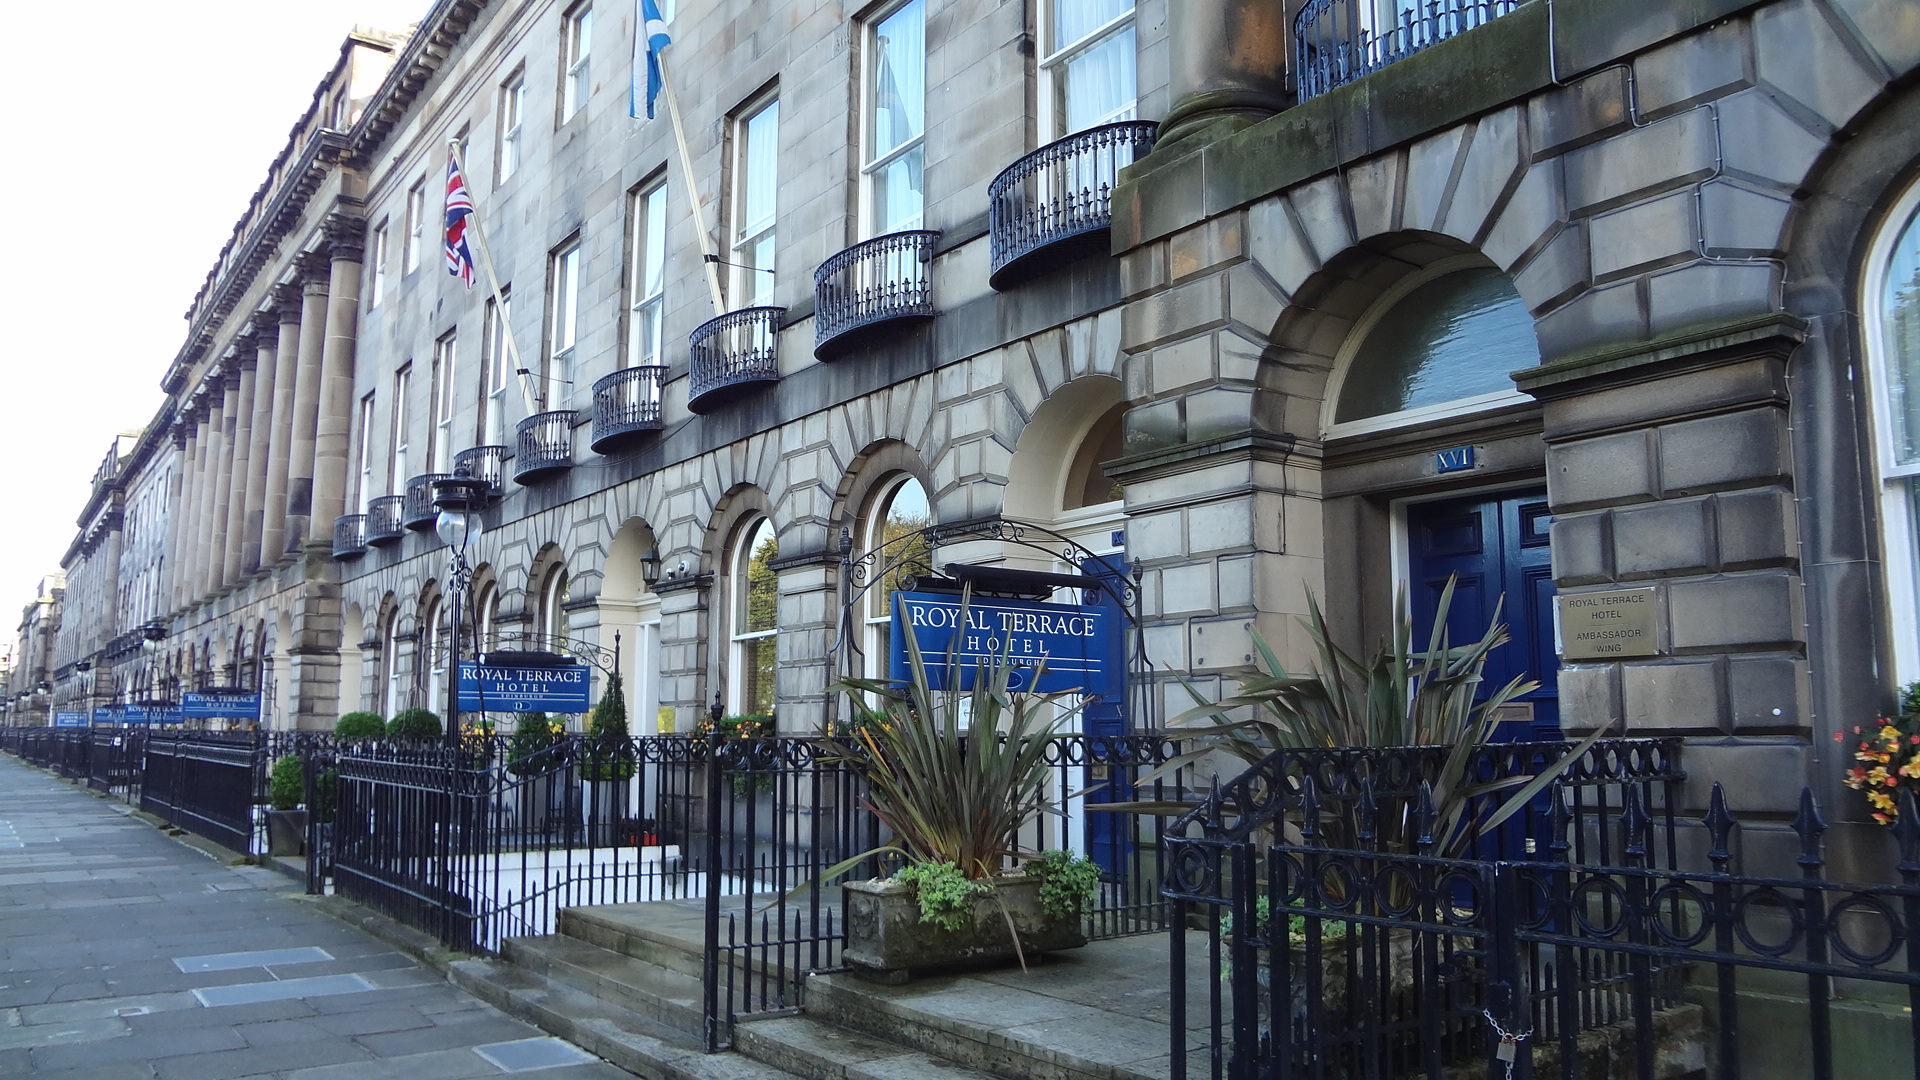 edinburgh royal terrace hotel weepingredorger